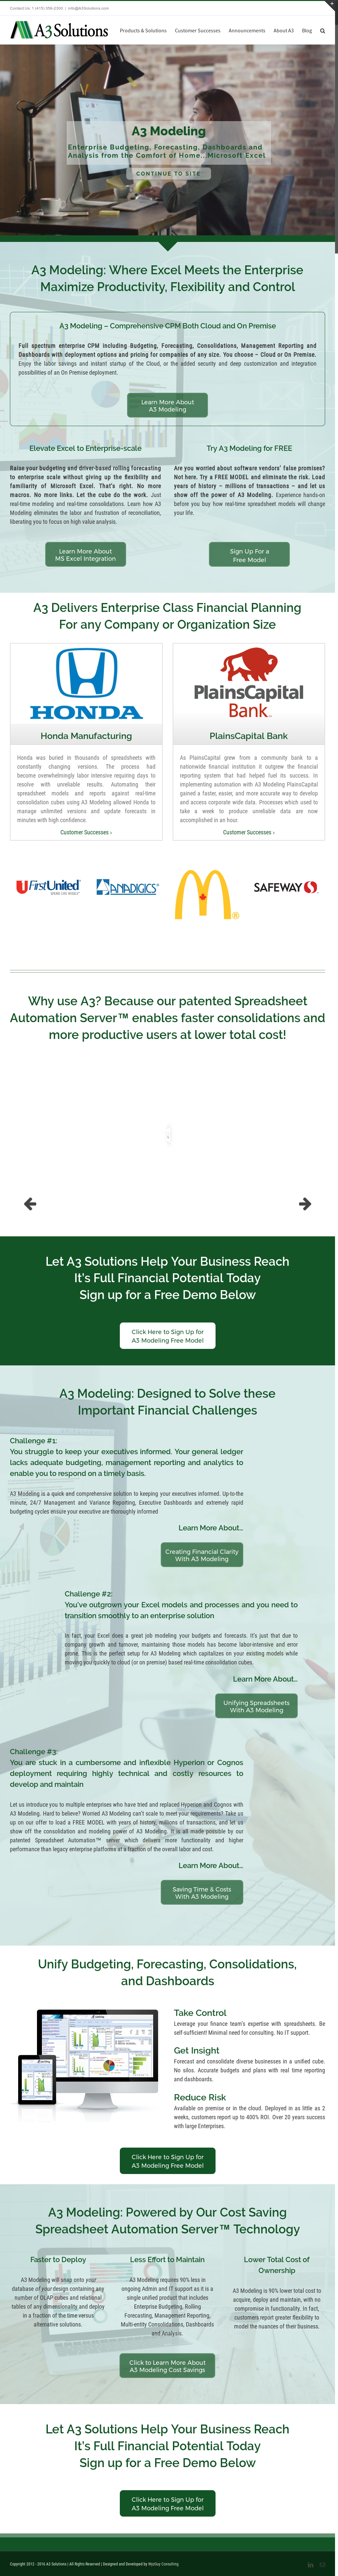 A3 Solutions Competitors, Revenue and Employees - Owler Company Profile